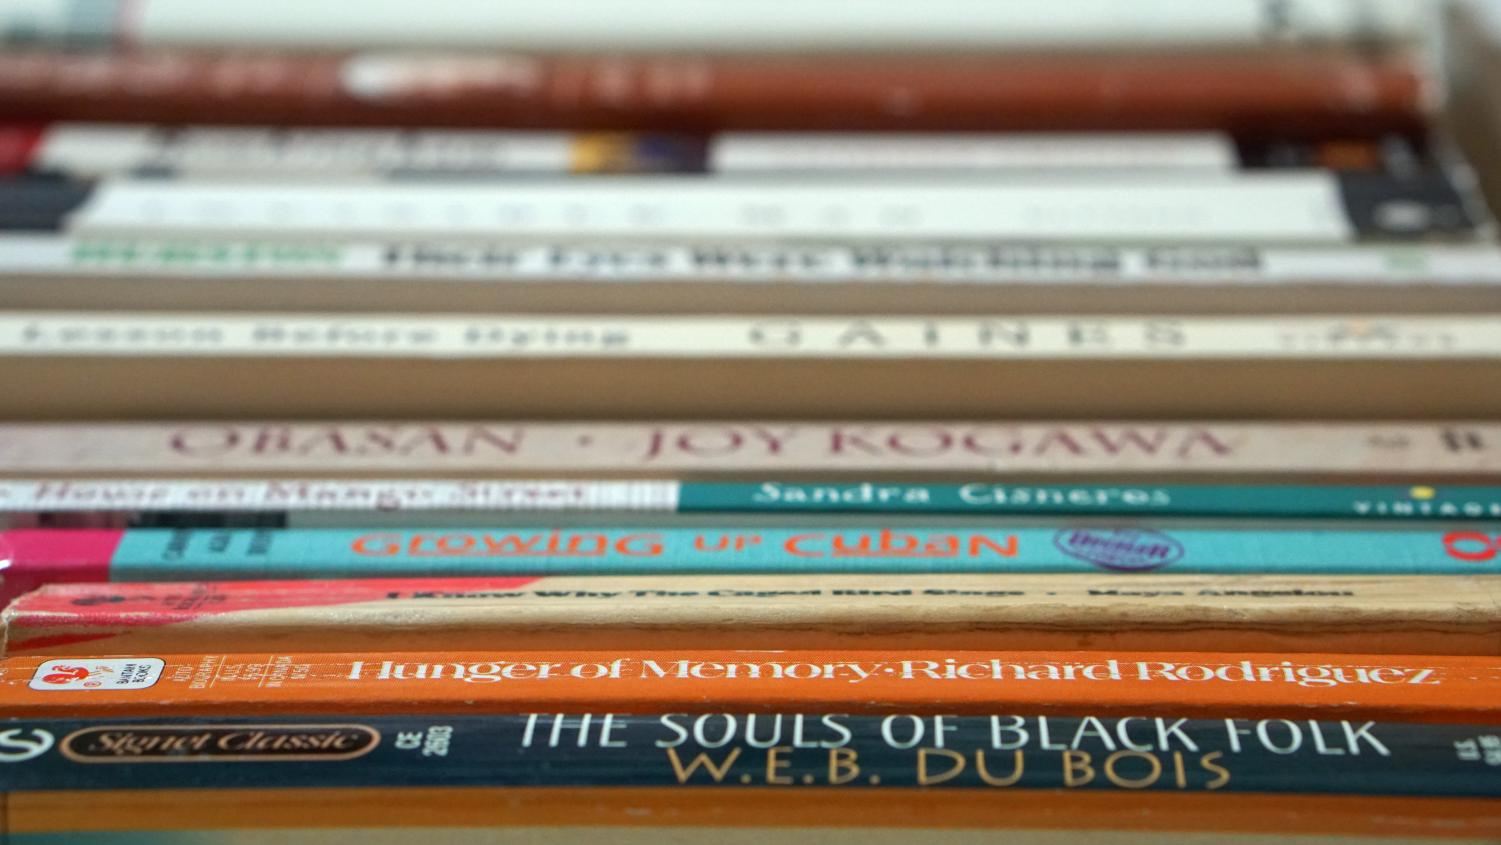 More of an effort must be made to expand the literary canon to authors of color. Out of the 43 books McCallum students read in English class, including AP and regular English classes, eight were written by authors of color.